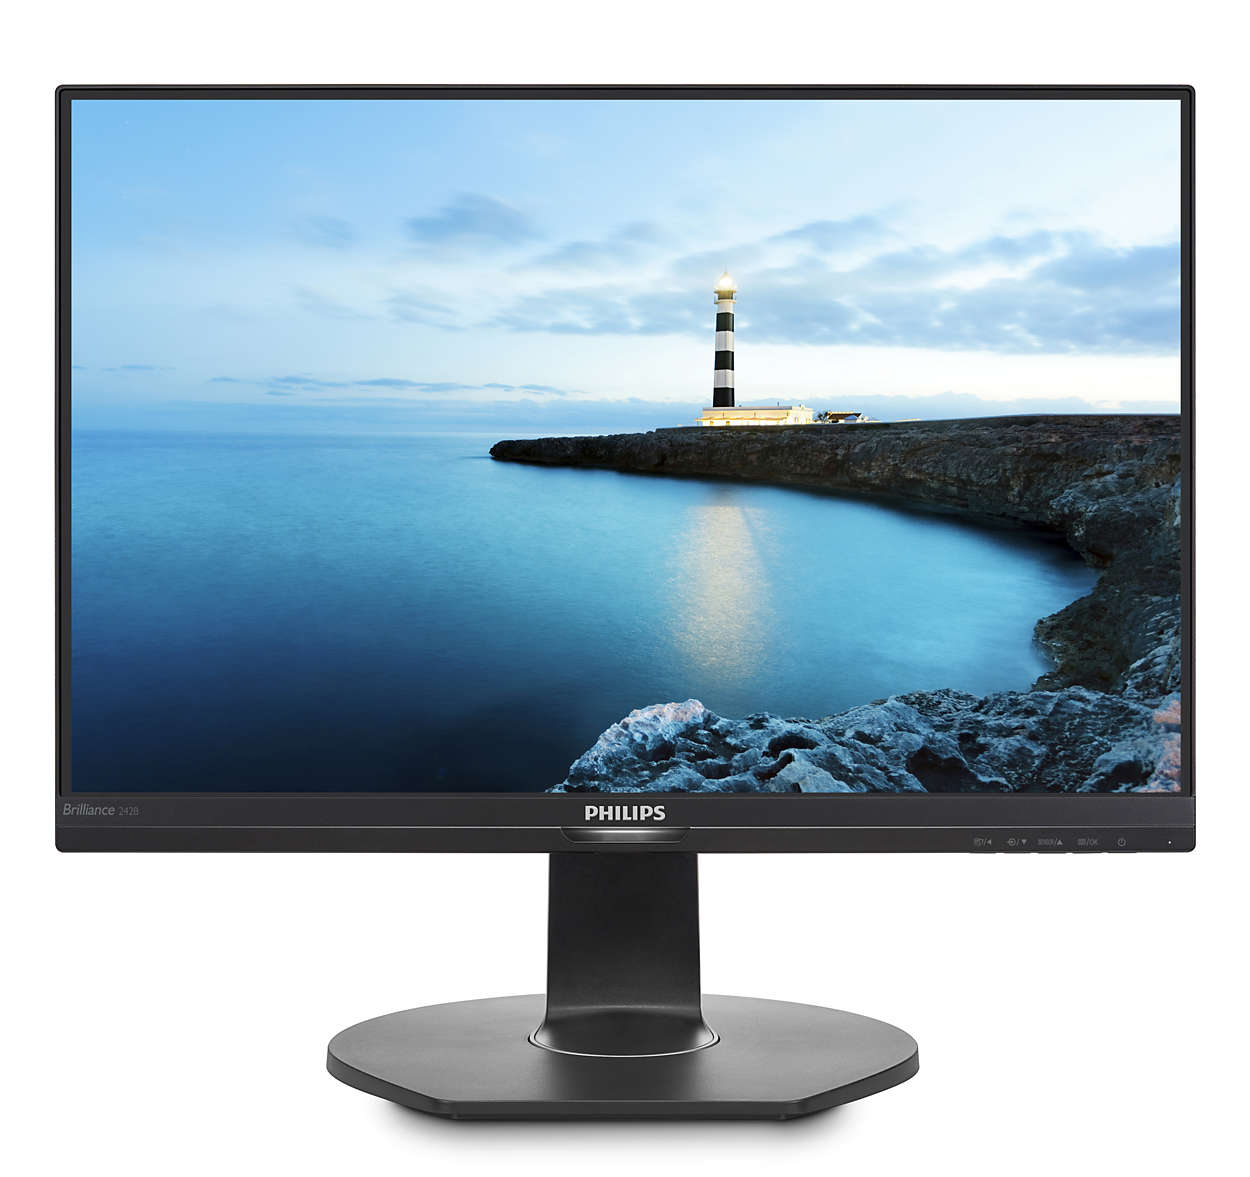 Monitor Philips 242B7QPTEB/00 24'', panel-IPS; HDMI, DP, D-Sub; reproduktory